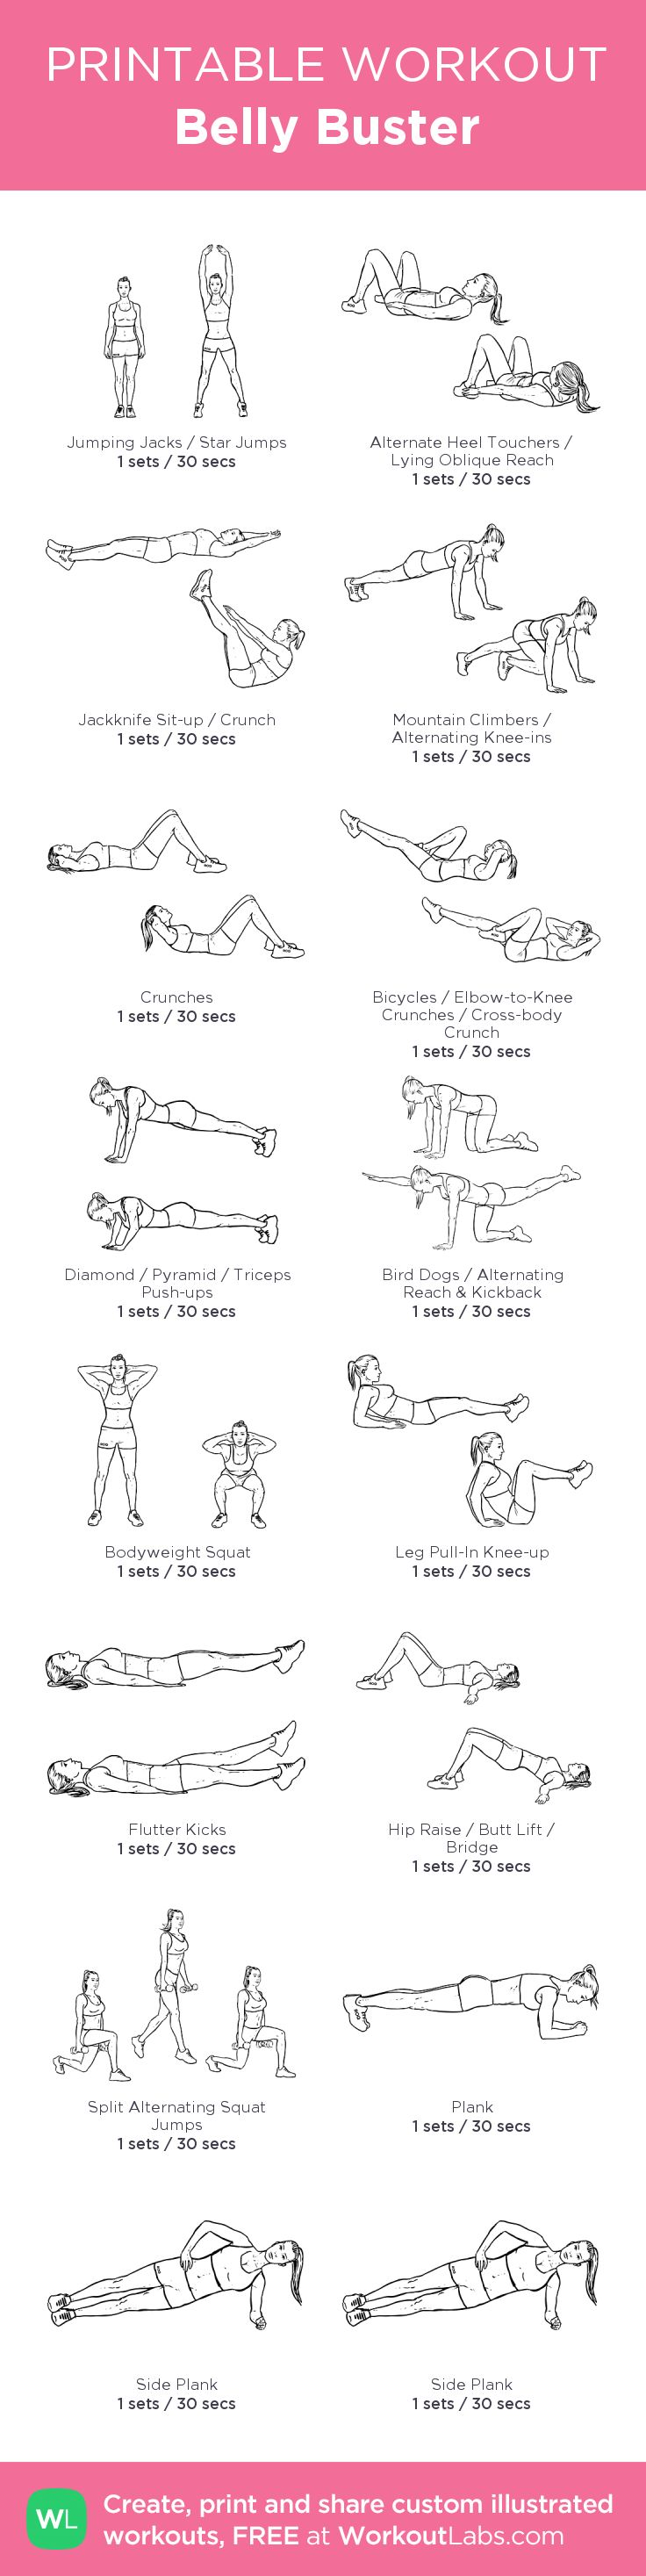 My Personal Belly Buster Workout